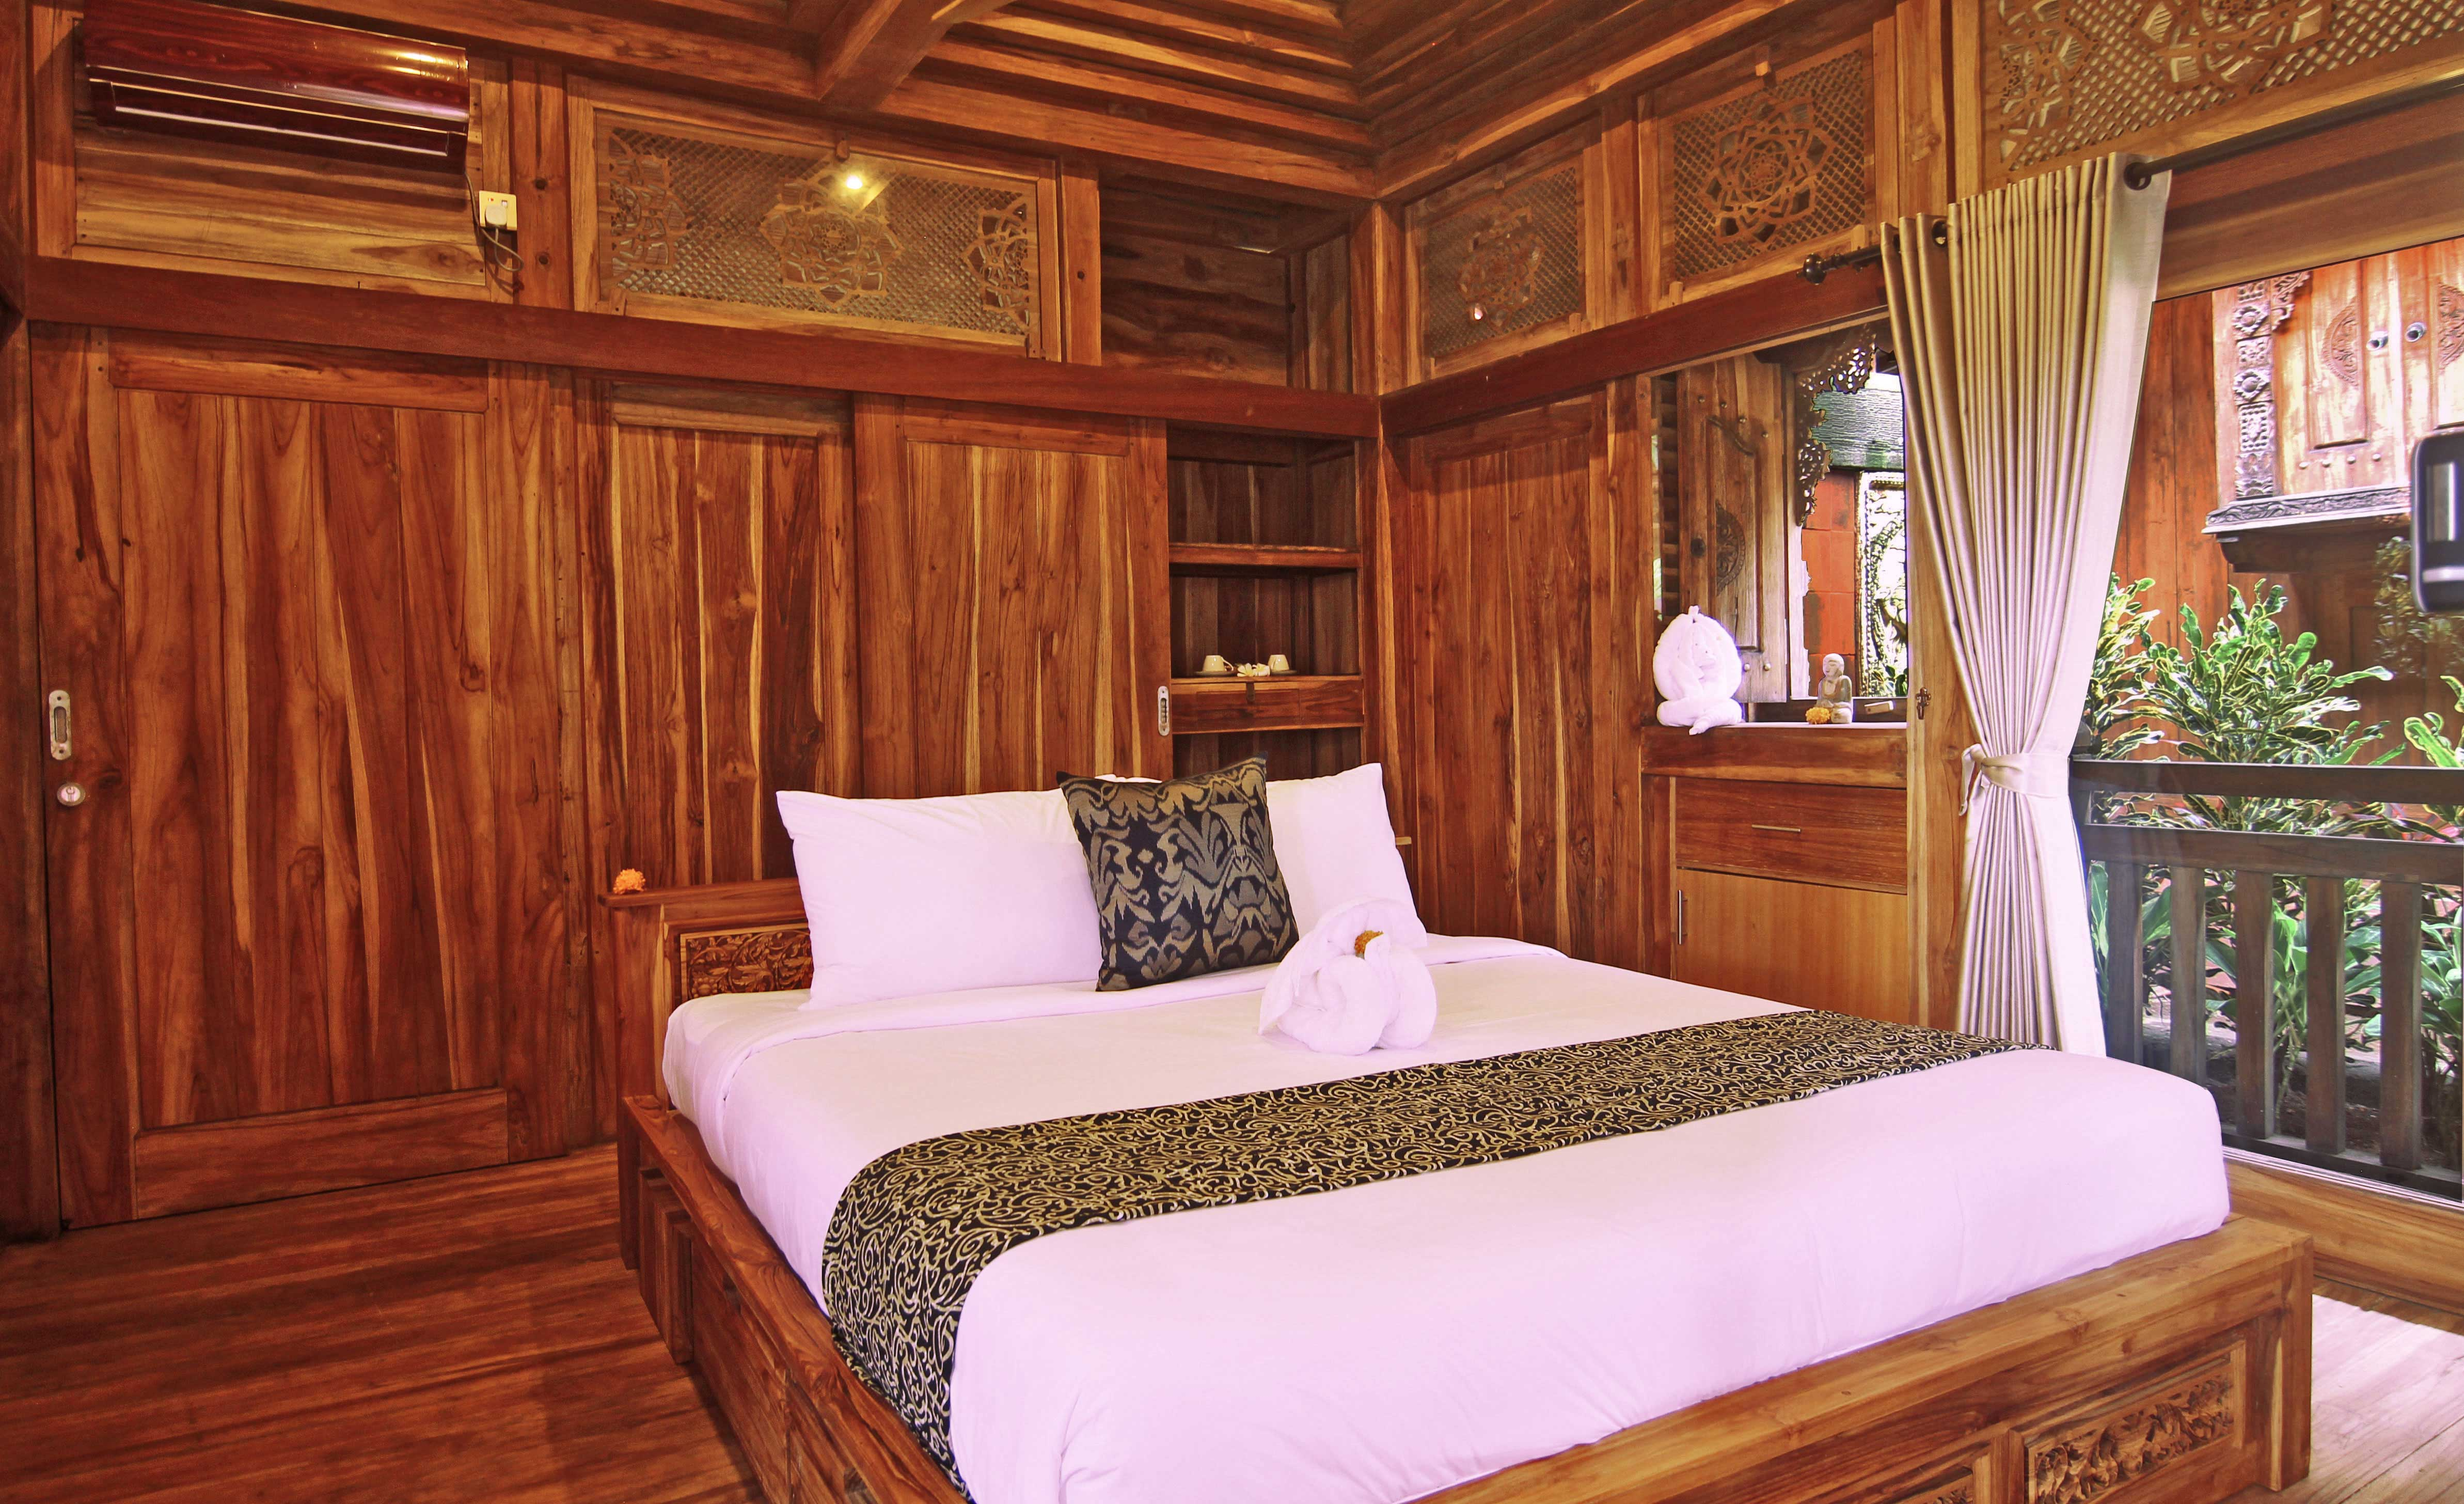 unique-wooden-joglo,-bedroom,-room,-udara-bali